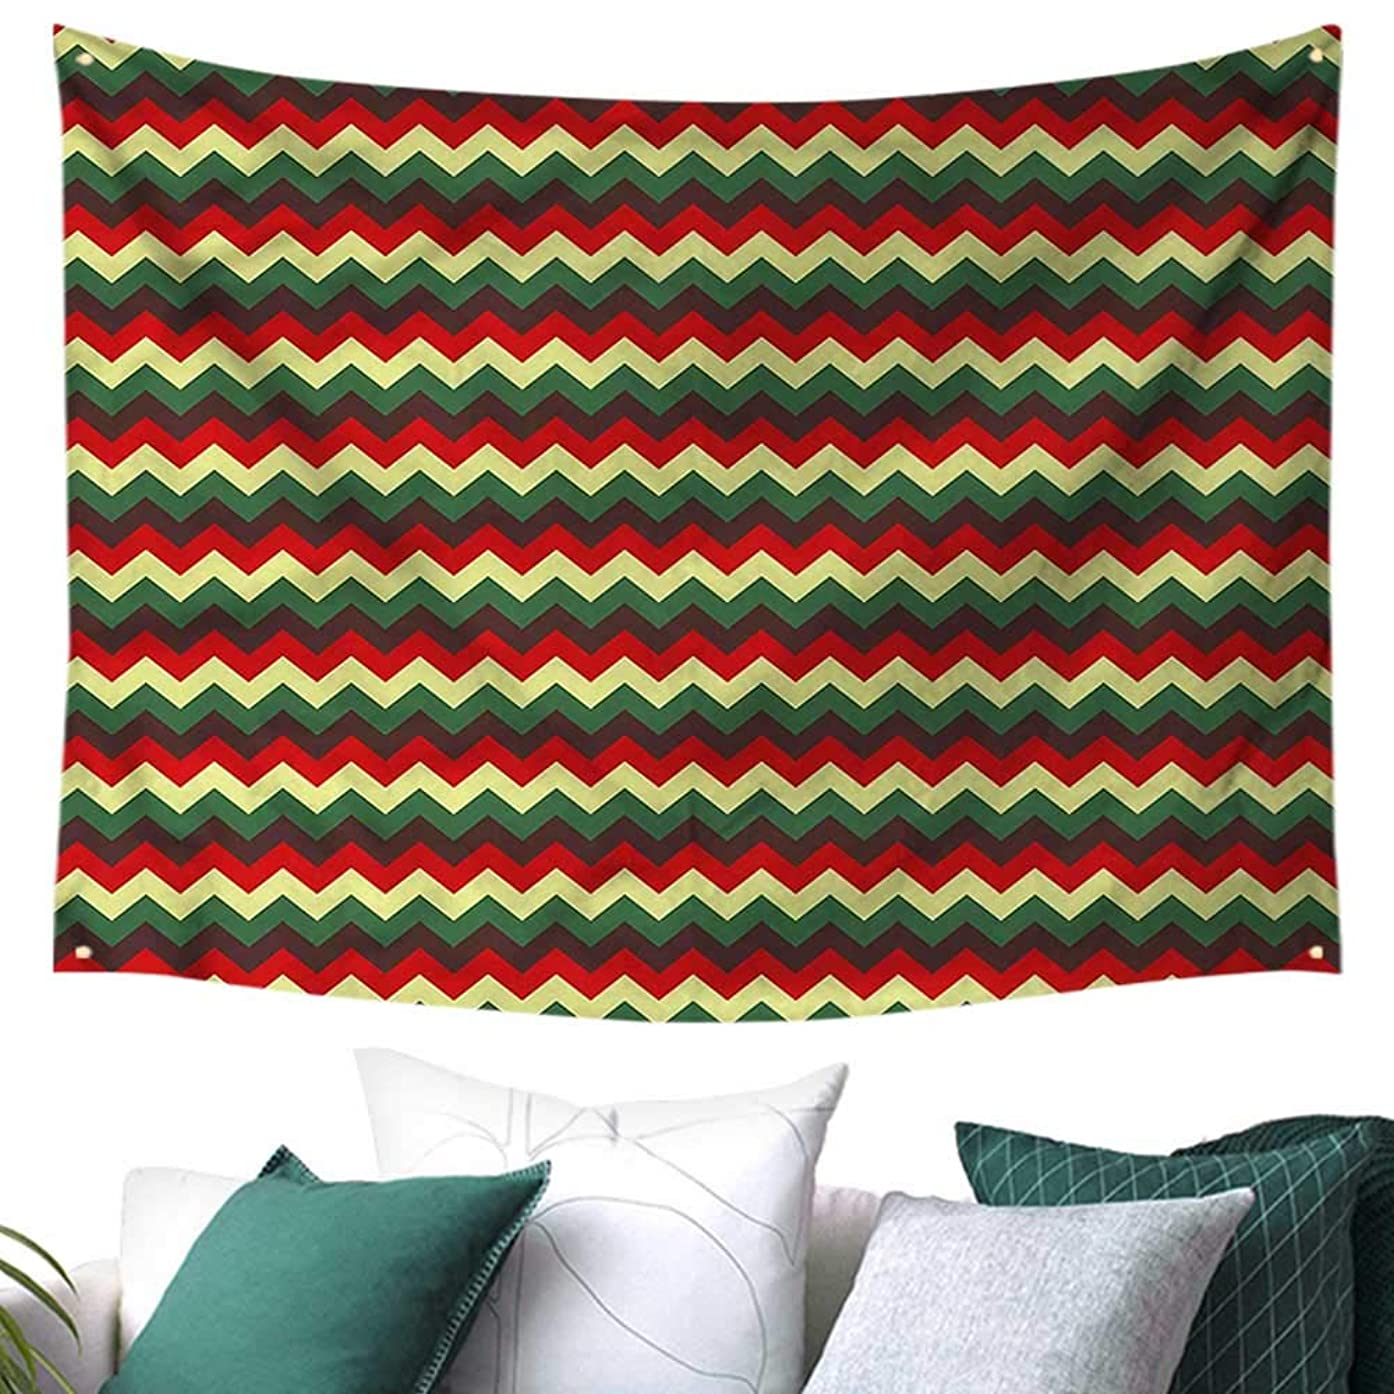 Chevron Square Tapestry Large Stripes and Zig Zags 80W x 60L Inch,Home Decorations for Living Room Bedroom